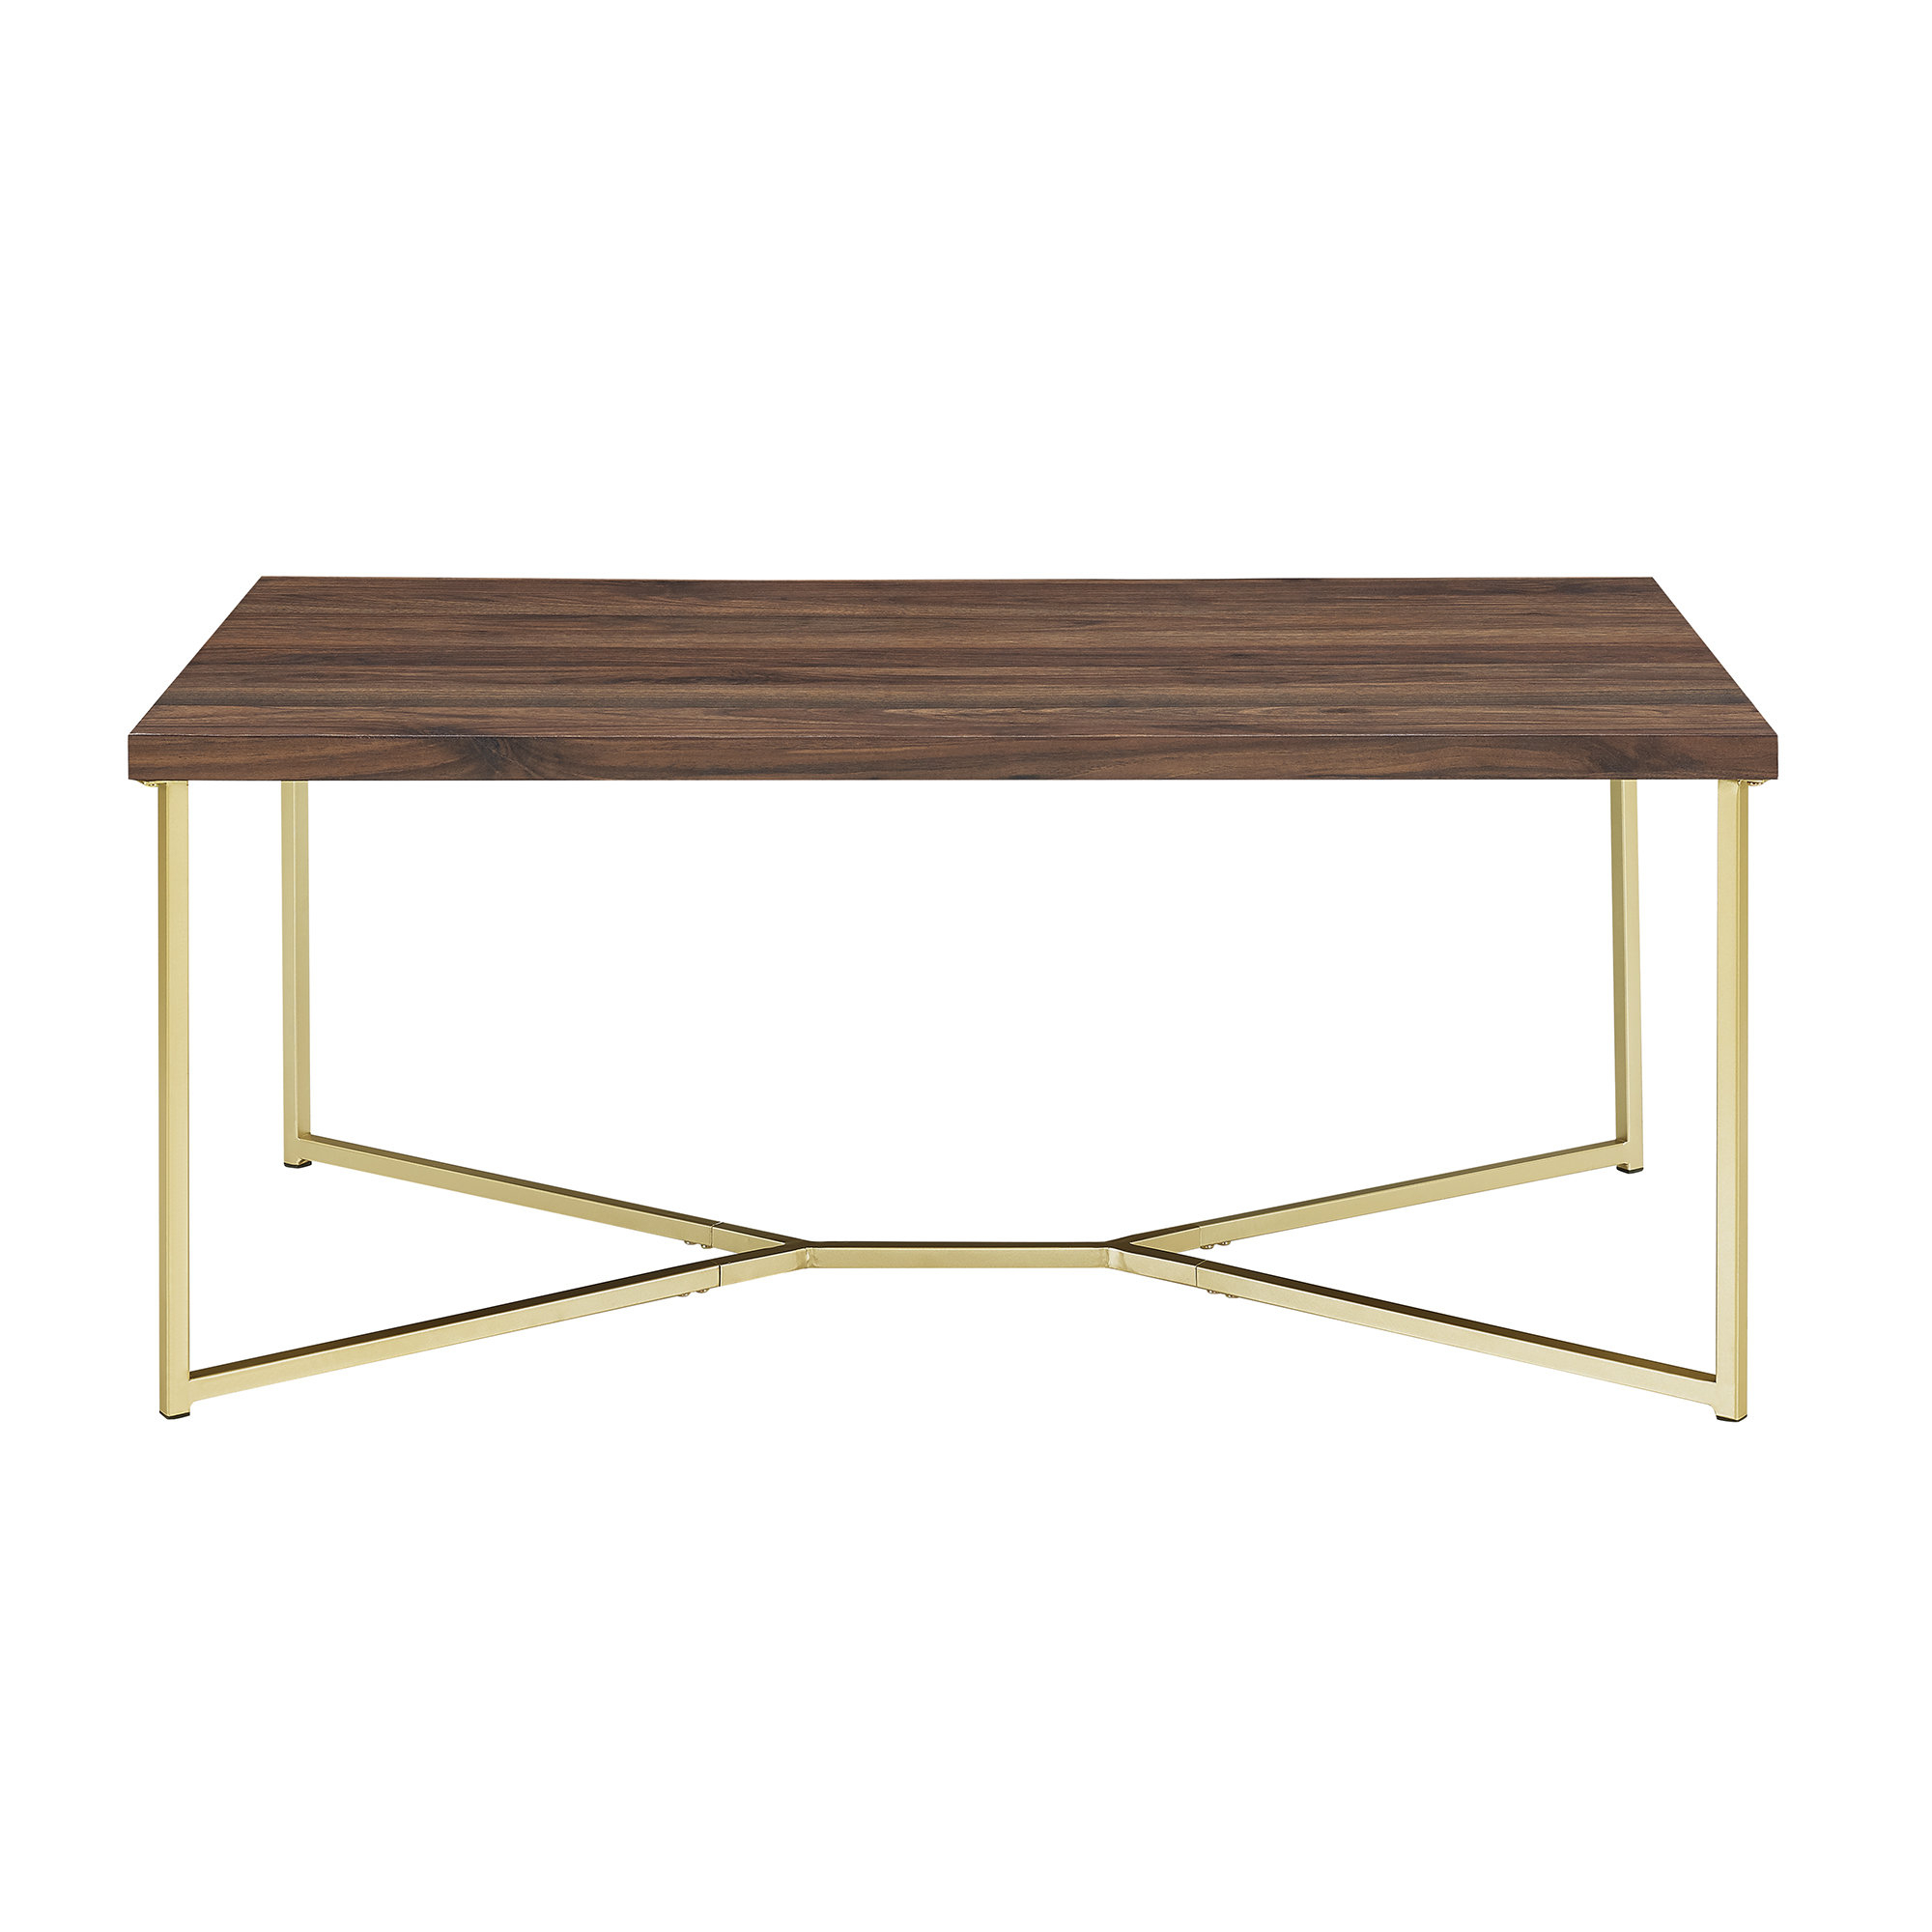 Orren Ellis | Allmodern Inside Layered Wood Small Square Console Tables (View 8 of 20)